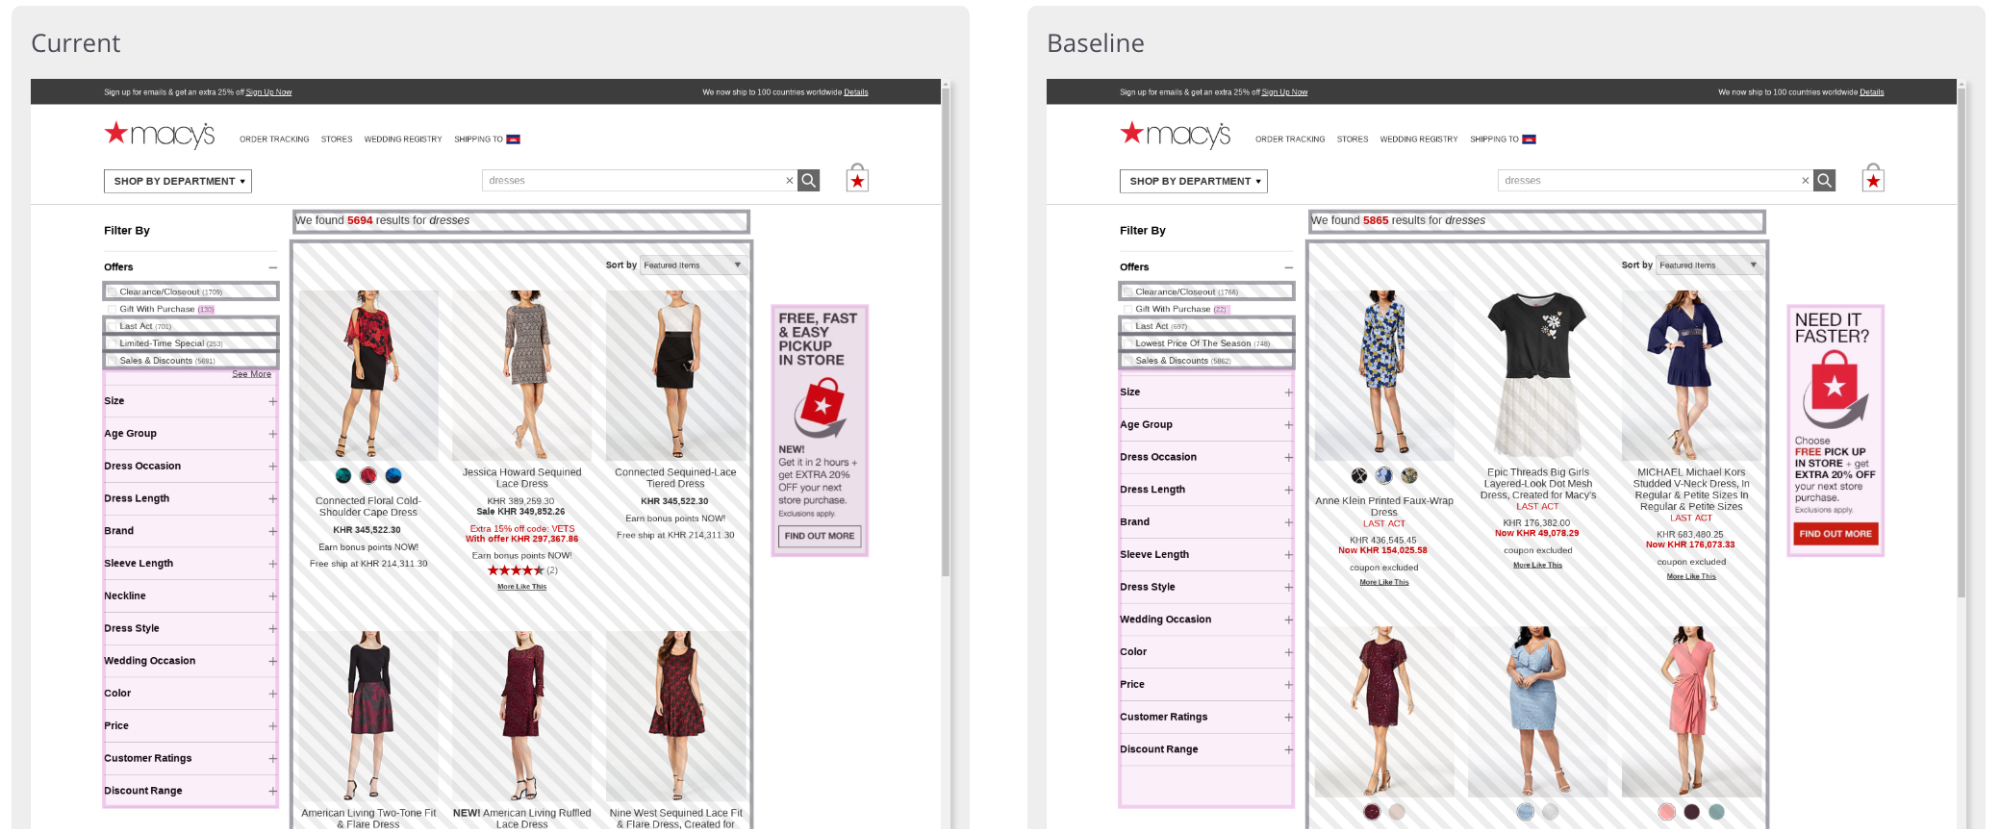 A screenshot showing that baseline screenshots from previous test runs are displayed next to those from the latest test run.